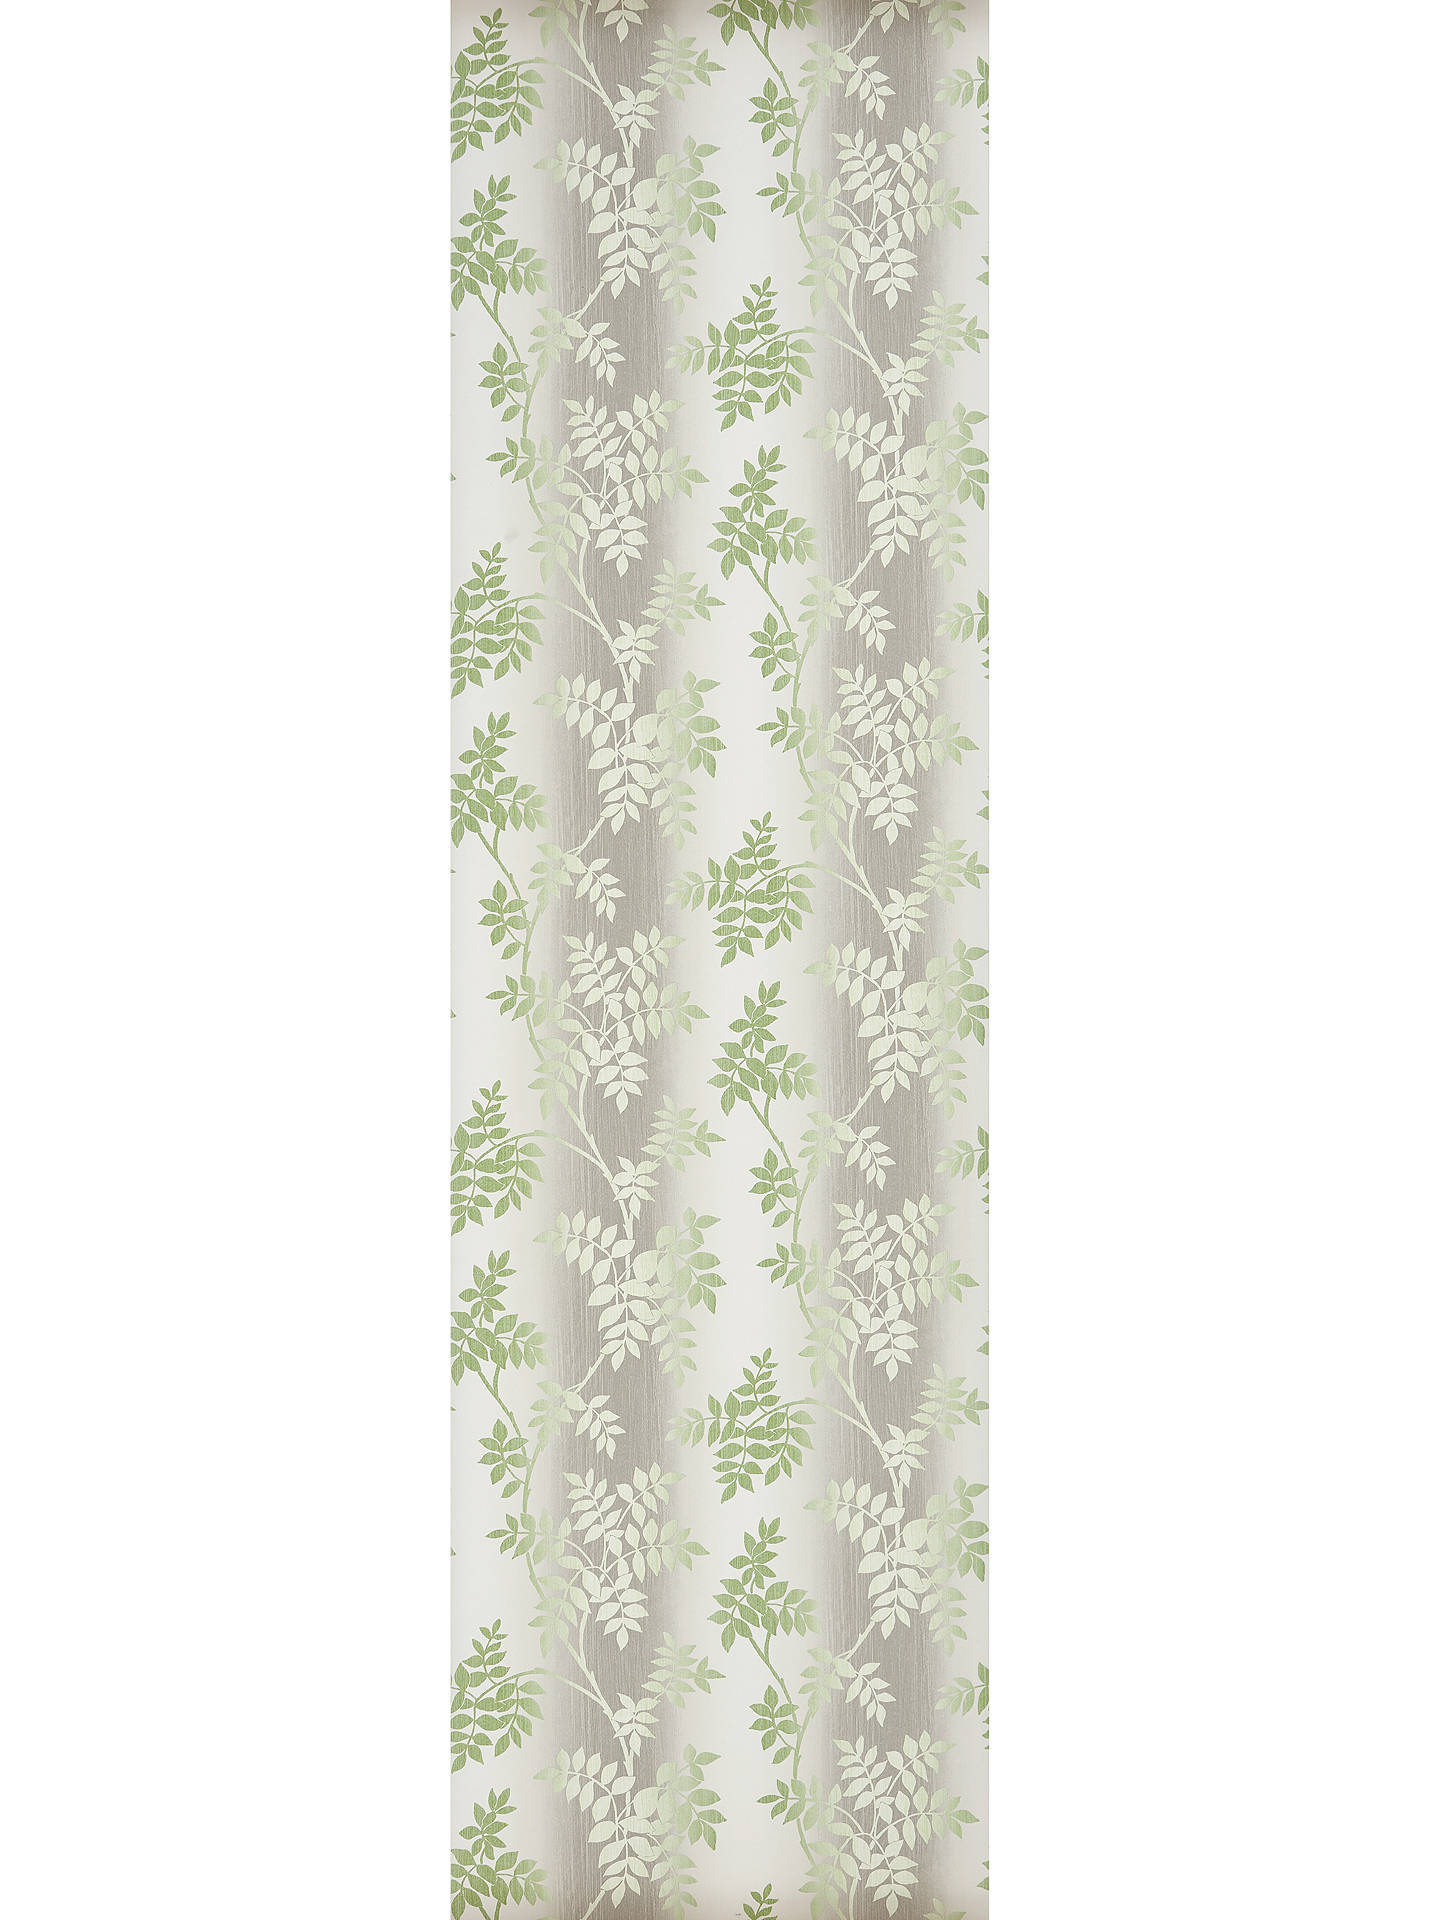 Buy Nina Campbell Posingford Wallpaper, NCW4394-05 Online at johnlewis.com